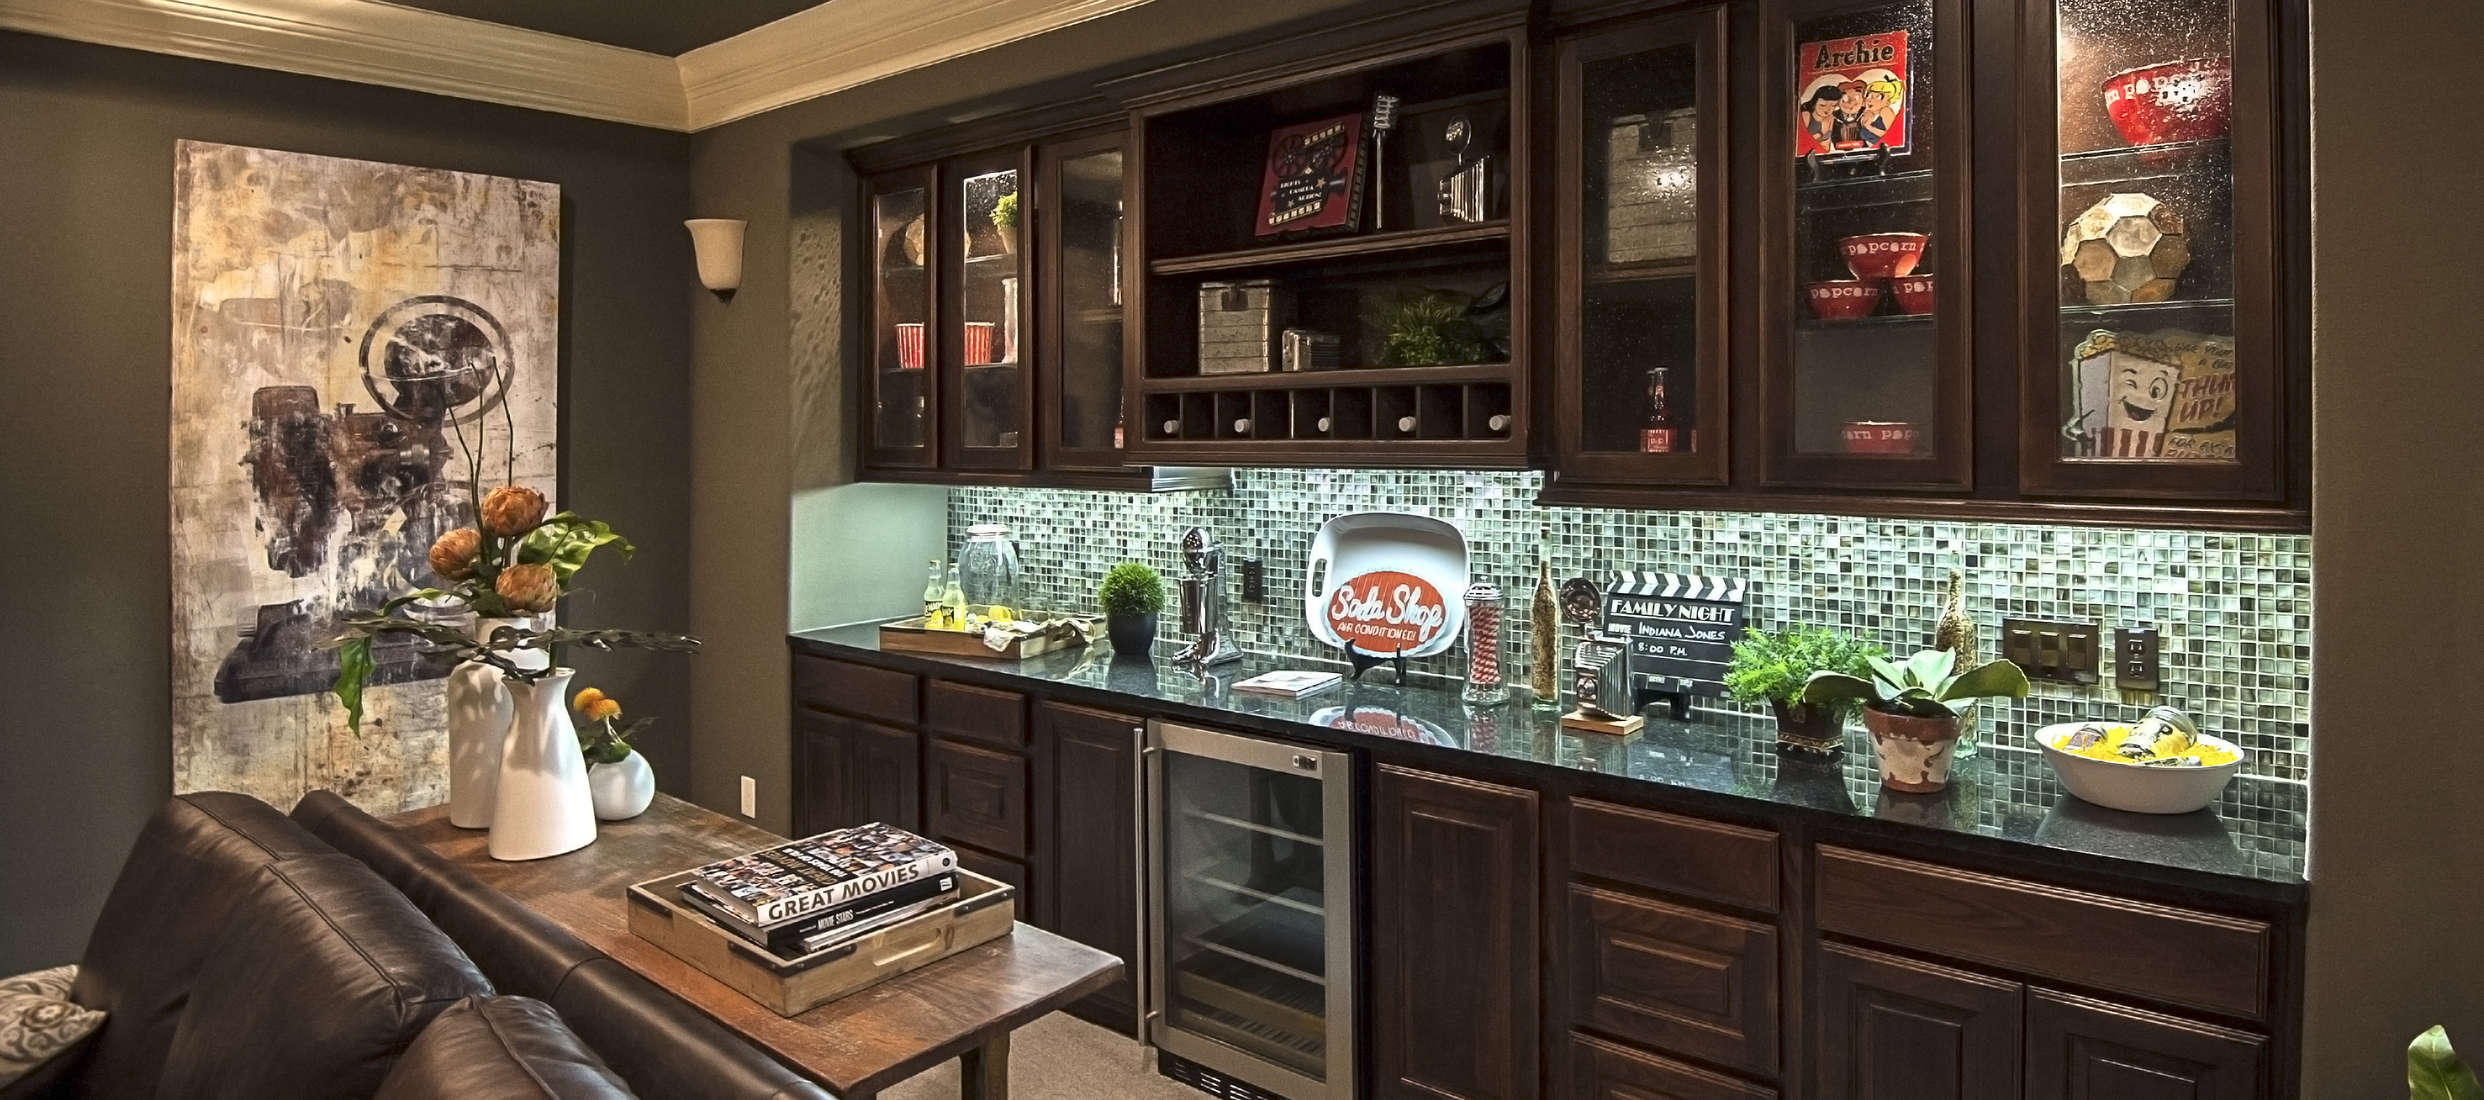 Bon J Kraft, Inc. | Custom Cabinets By Houston Cabinet Company, J Kraft, Inc.